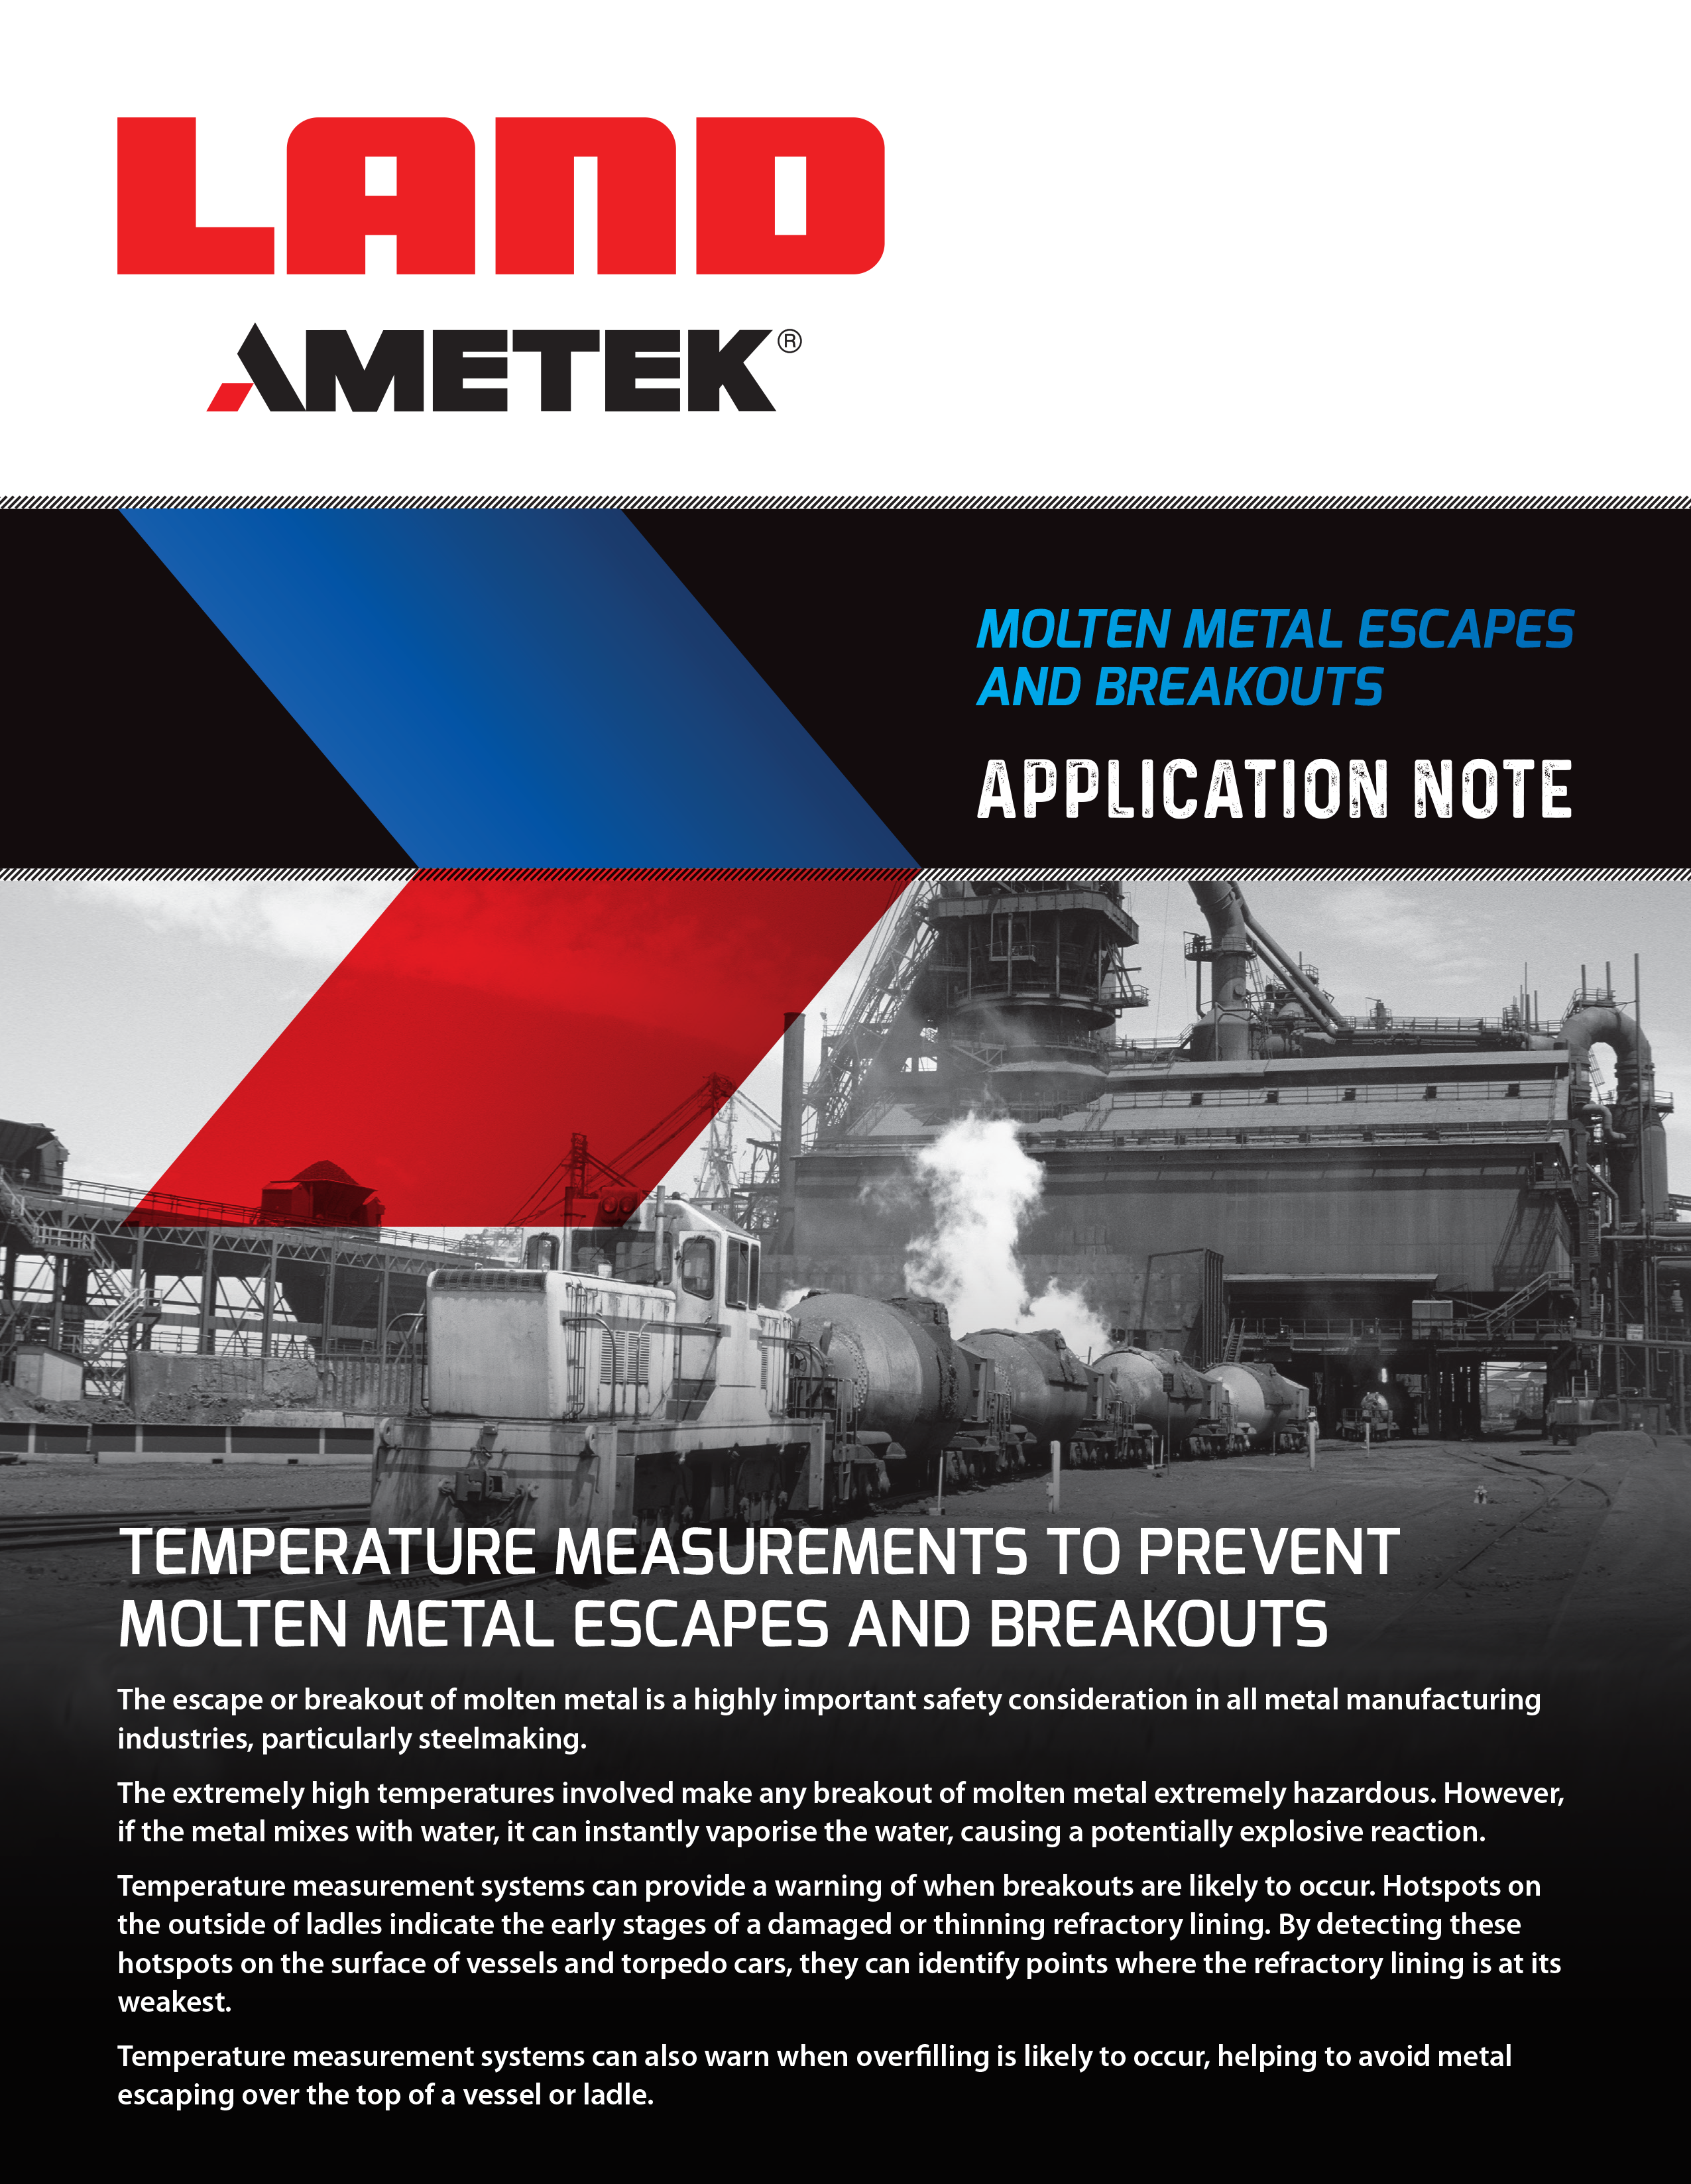 Molten Metal Escapes and Breakouts - Application Note